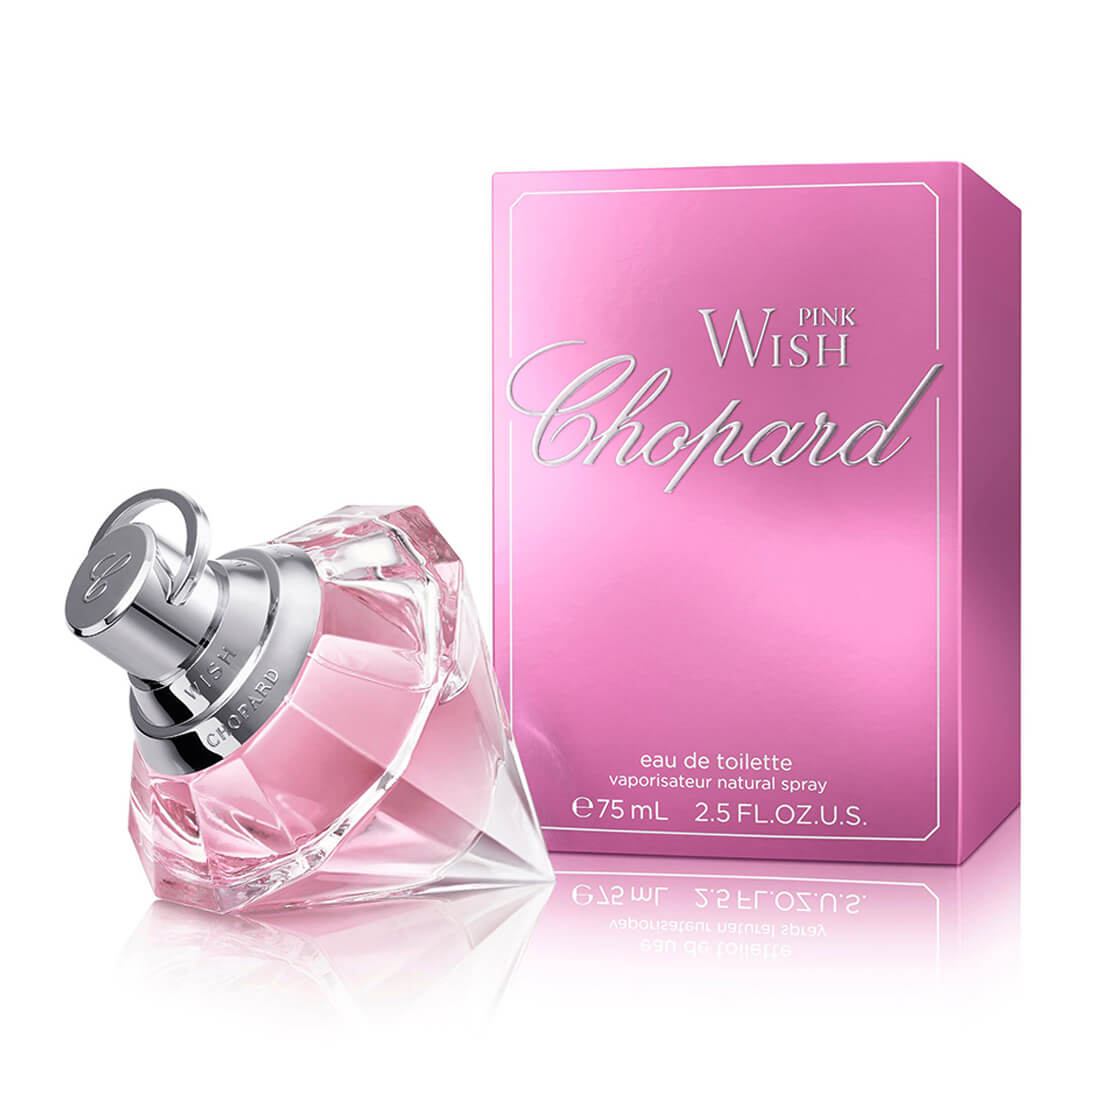 Chopard Pink Wish Eau De Perfume For Women - 75ml